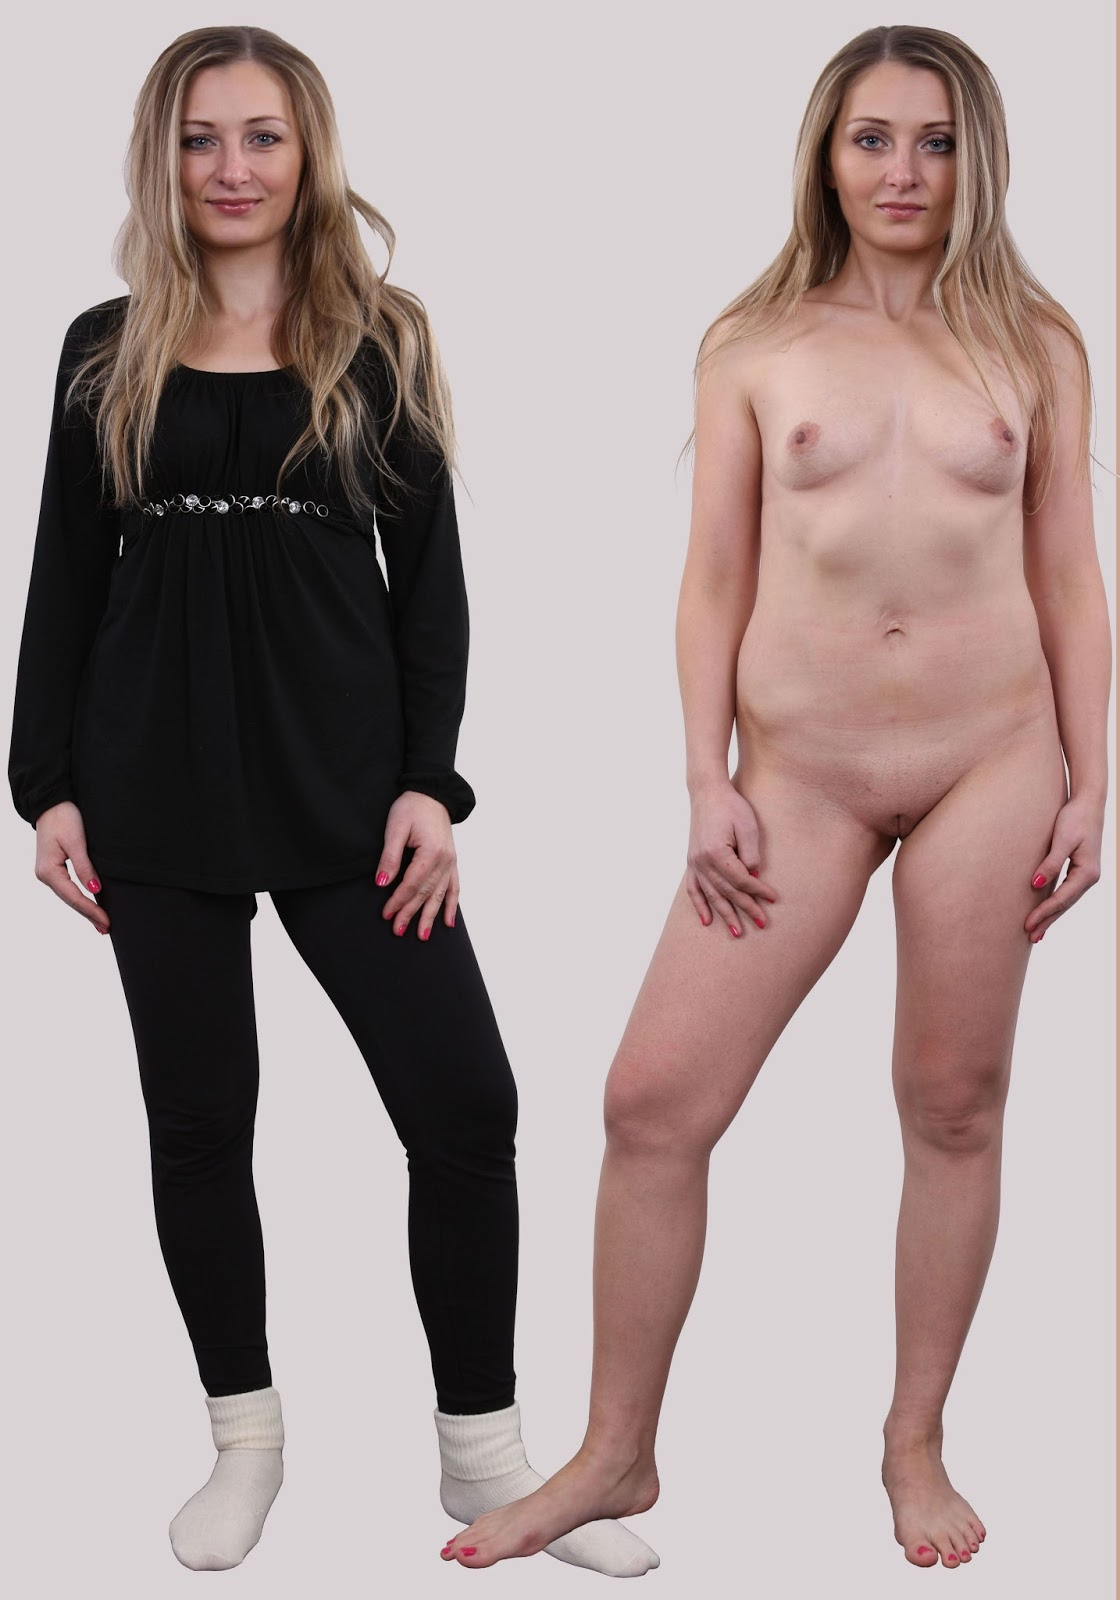 Casting Naked Girls